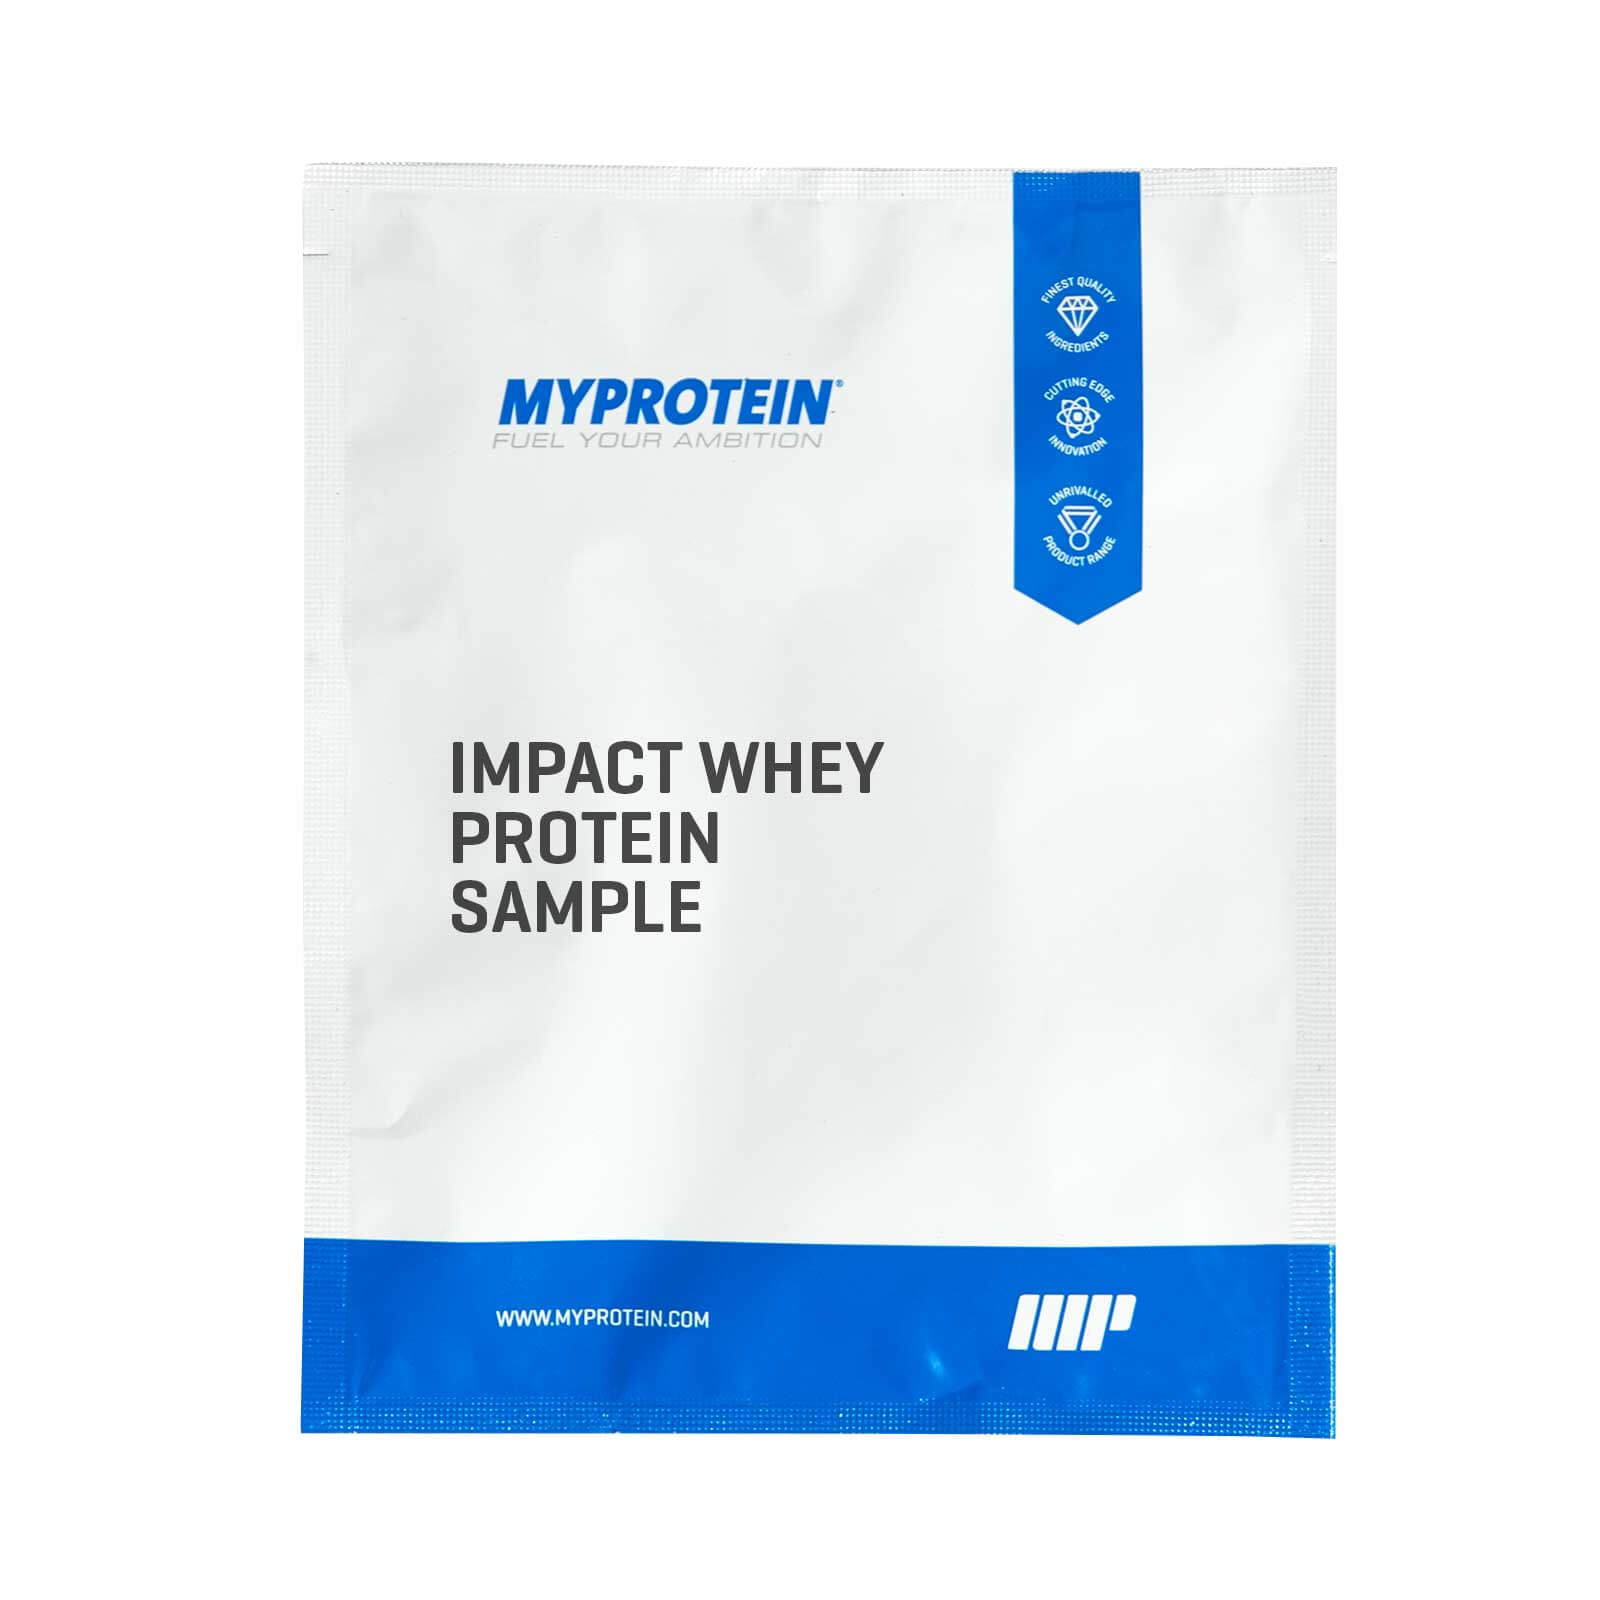 Impact Whey Protein (Sample) - Banana 25G